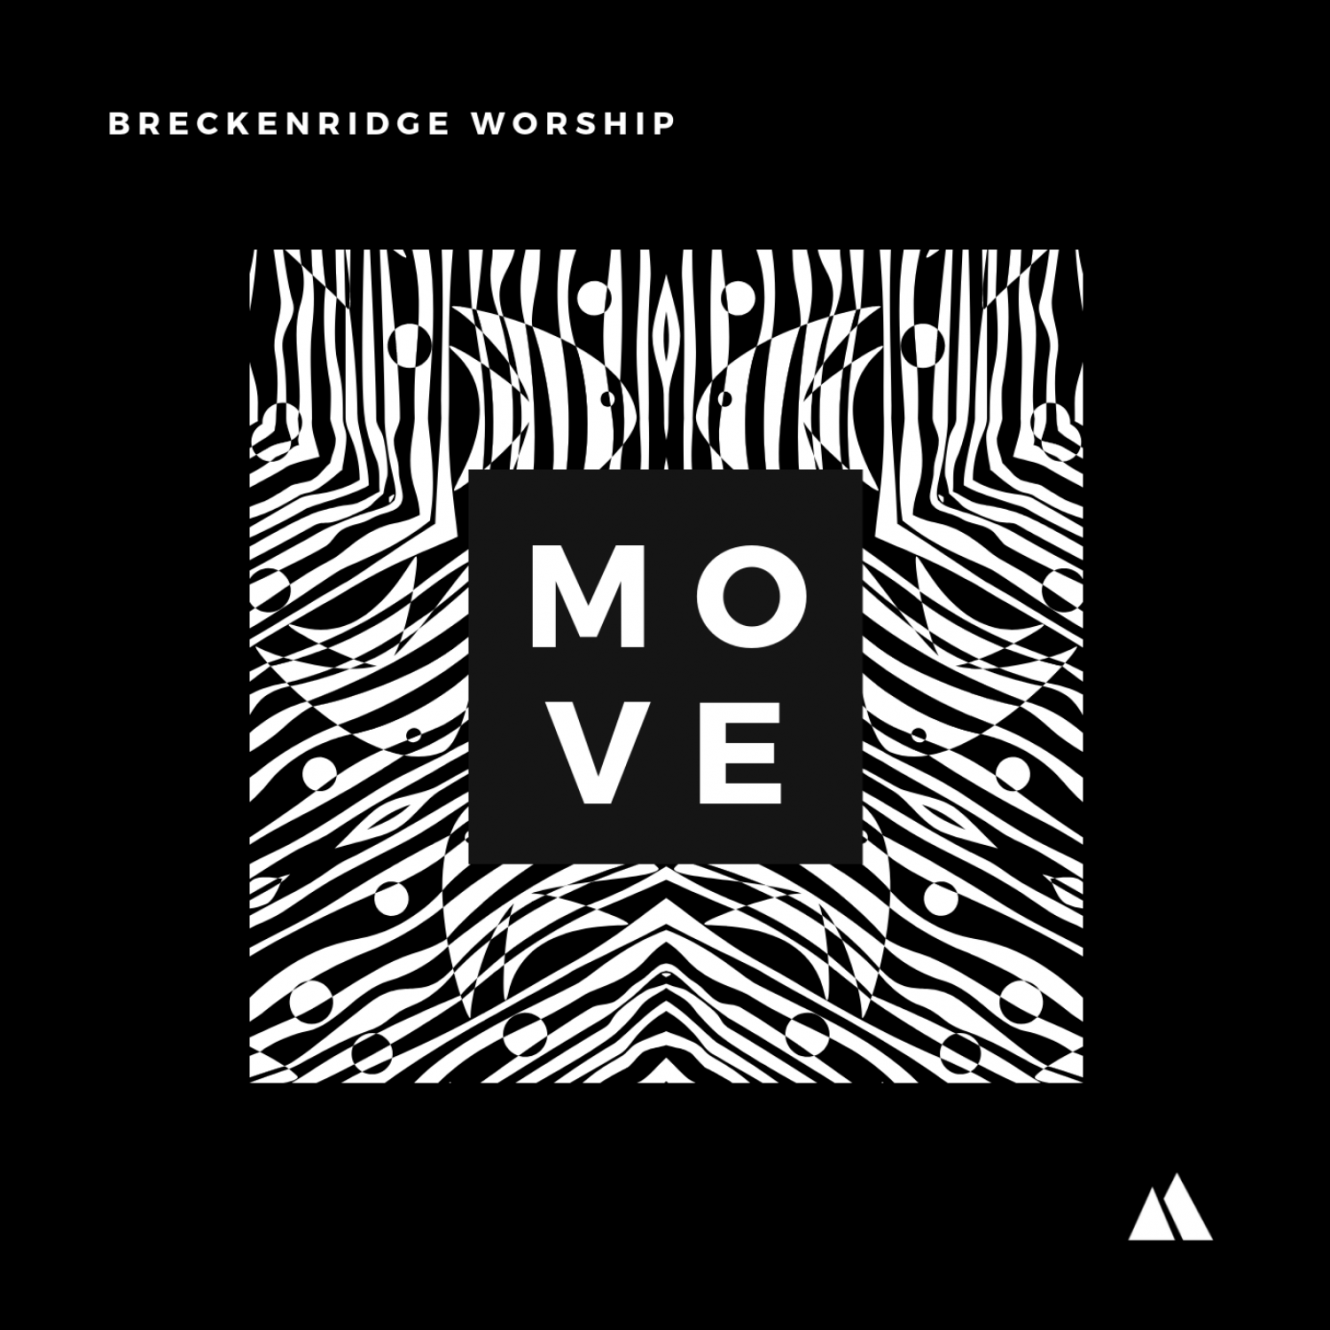 Move - Breckenridge Worship